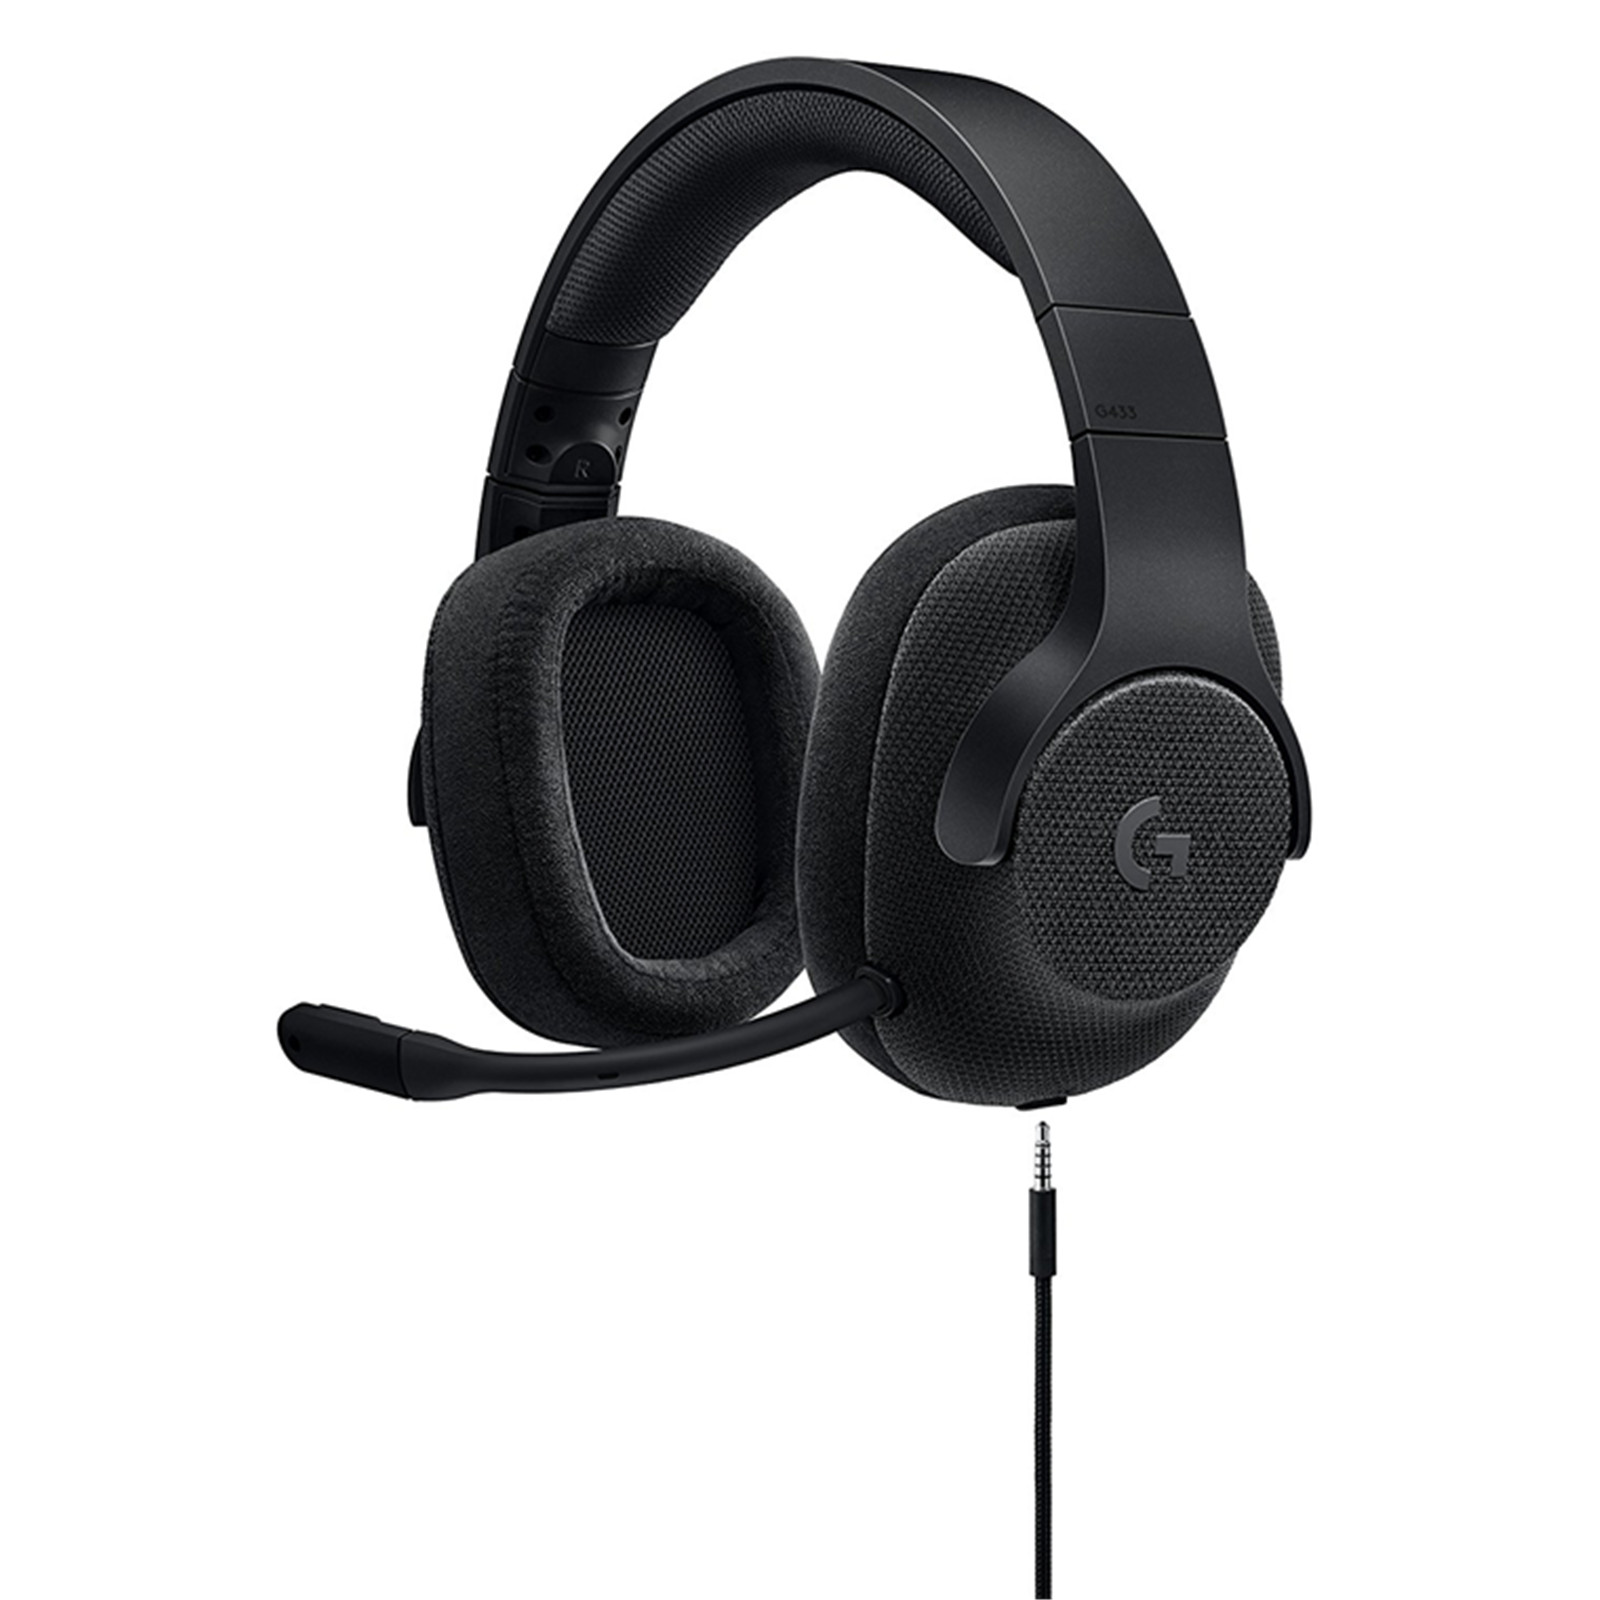 Buy the Logitech G433 7 1 Surround Sound USB Gaming Headset - Black